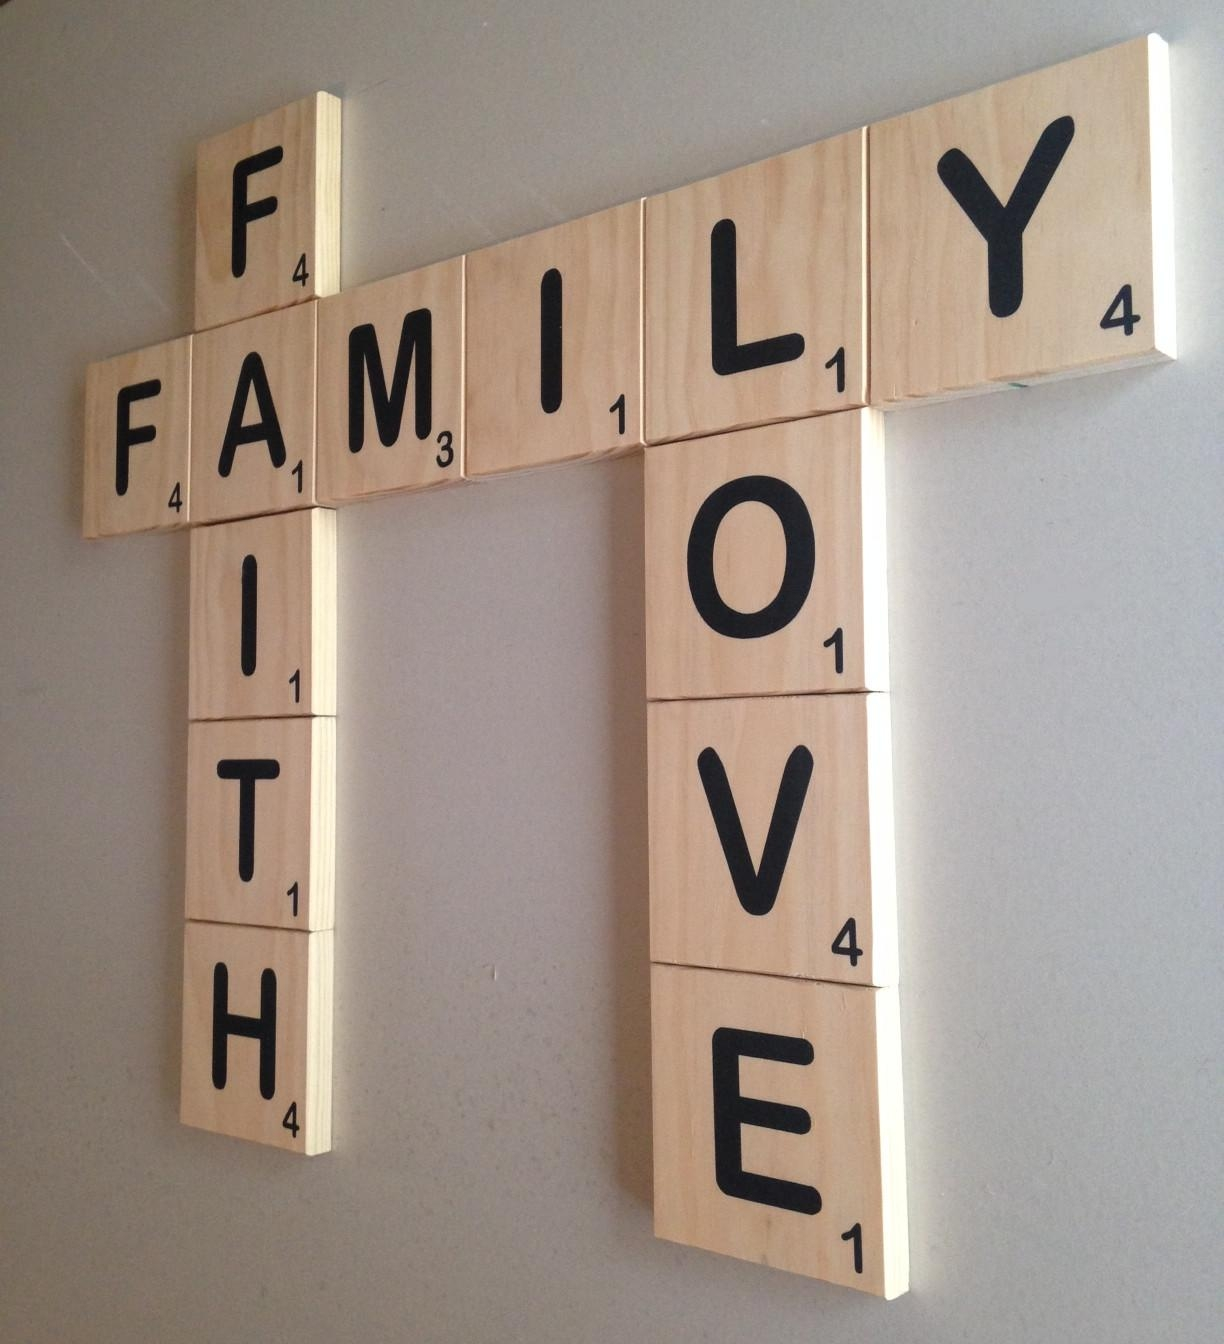 Scrabble Wall Tiles, Scrabble Wall Art Within Scrabble Letters Wall Art (Image 15 of 20)